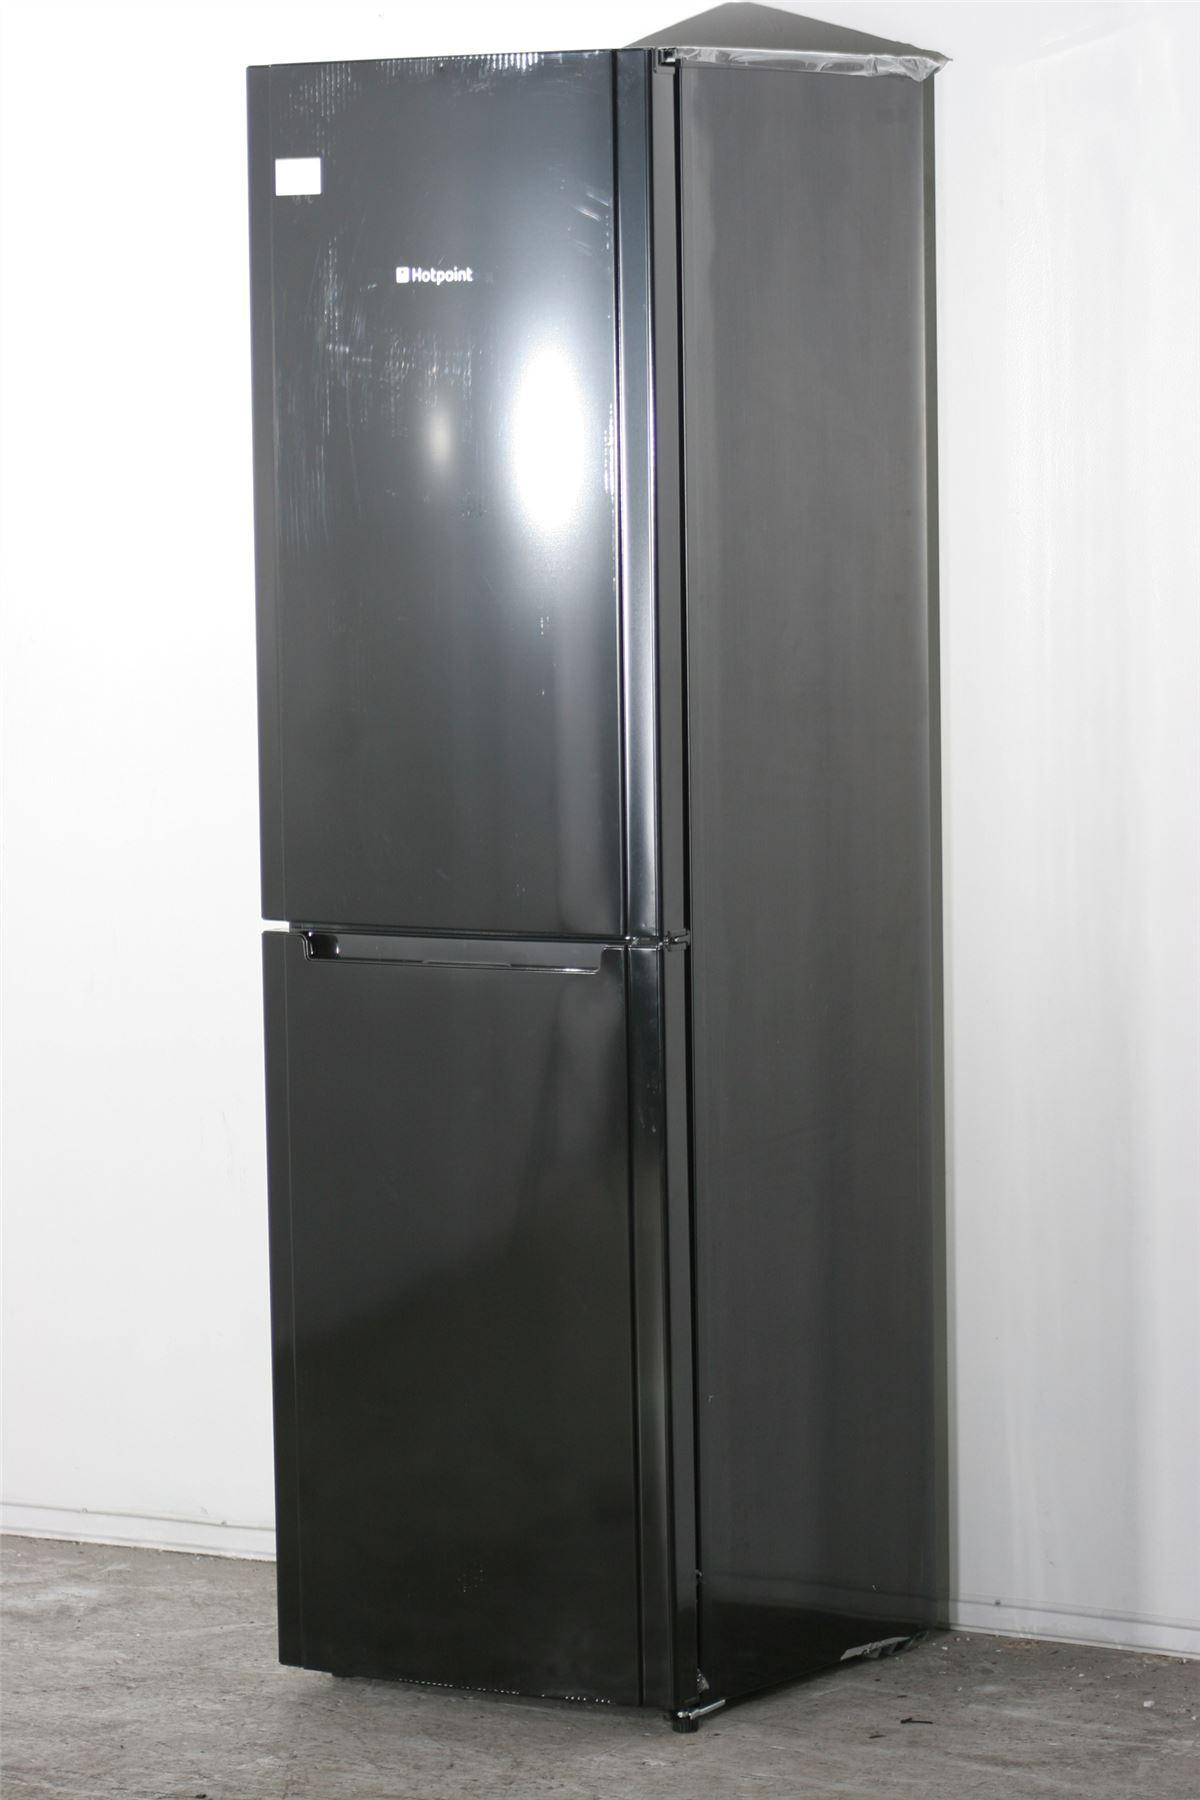 hotpoint fridge freezer fsfl58k black online store. Black Bedroom Furniture Sets. Home Design Ideas